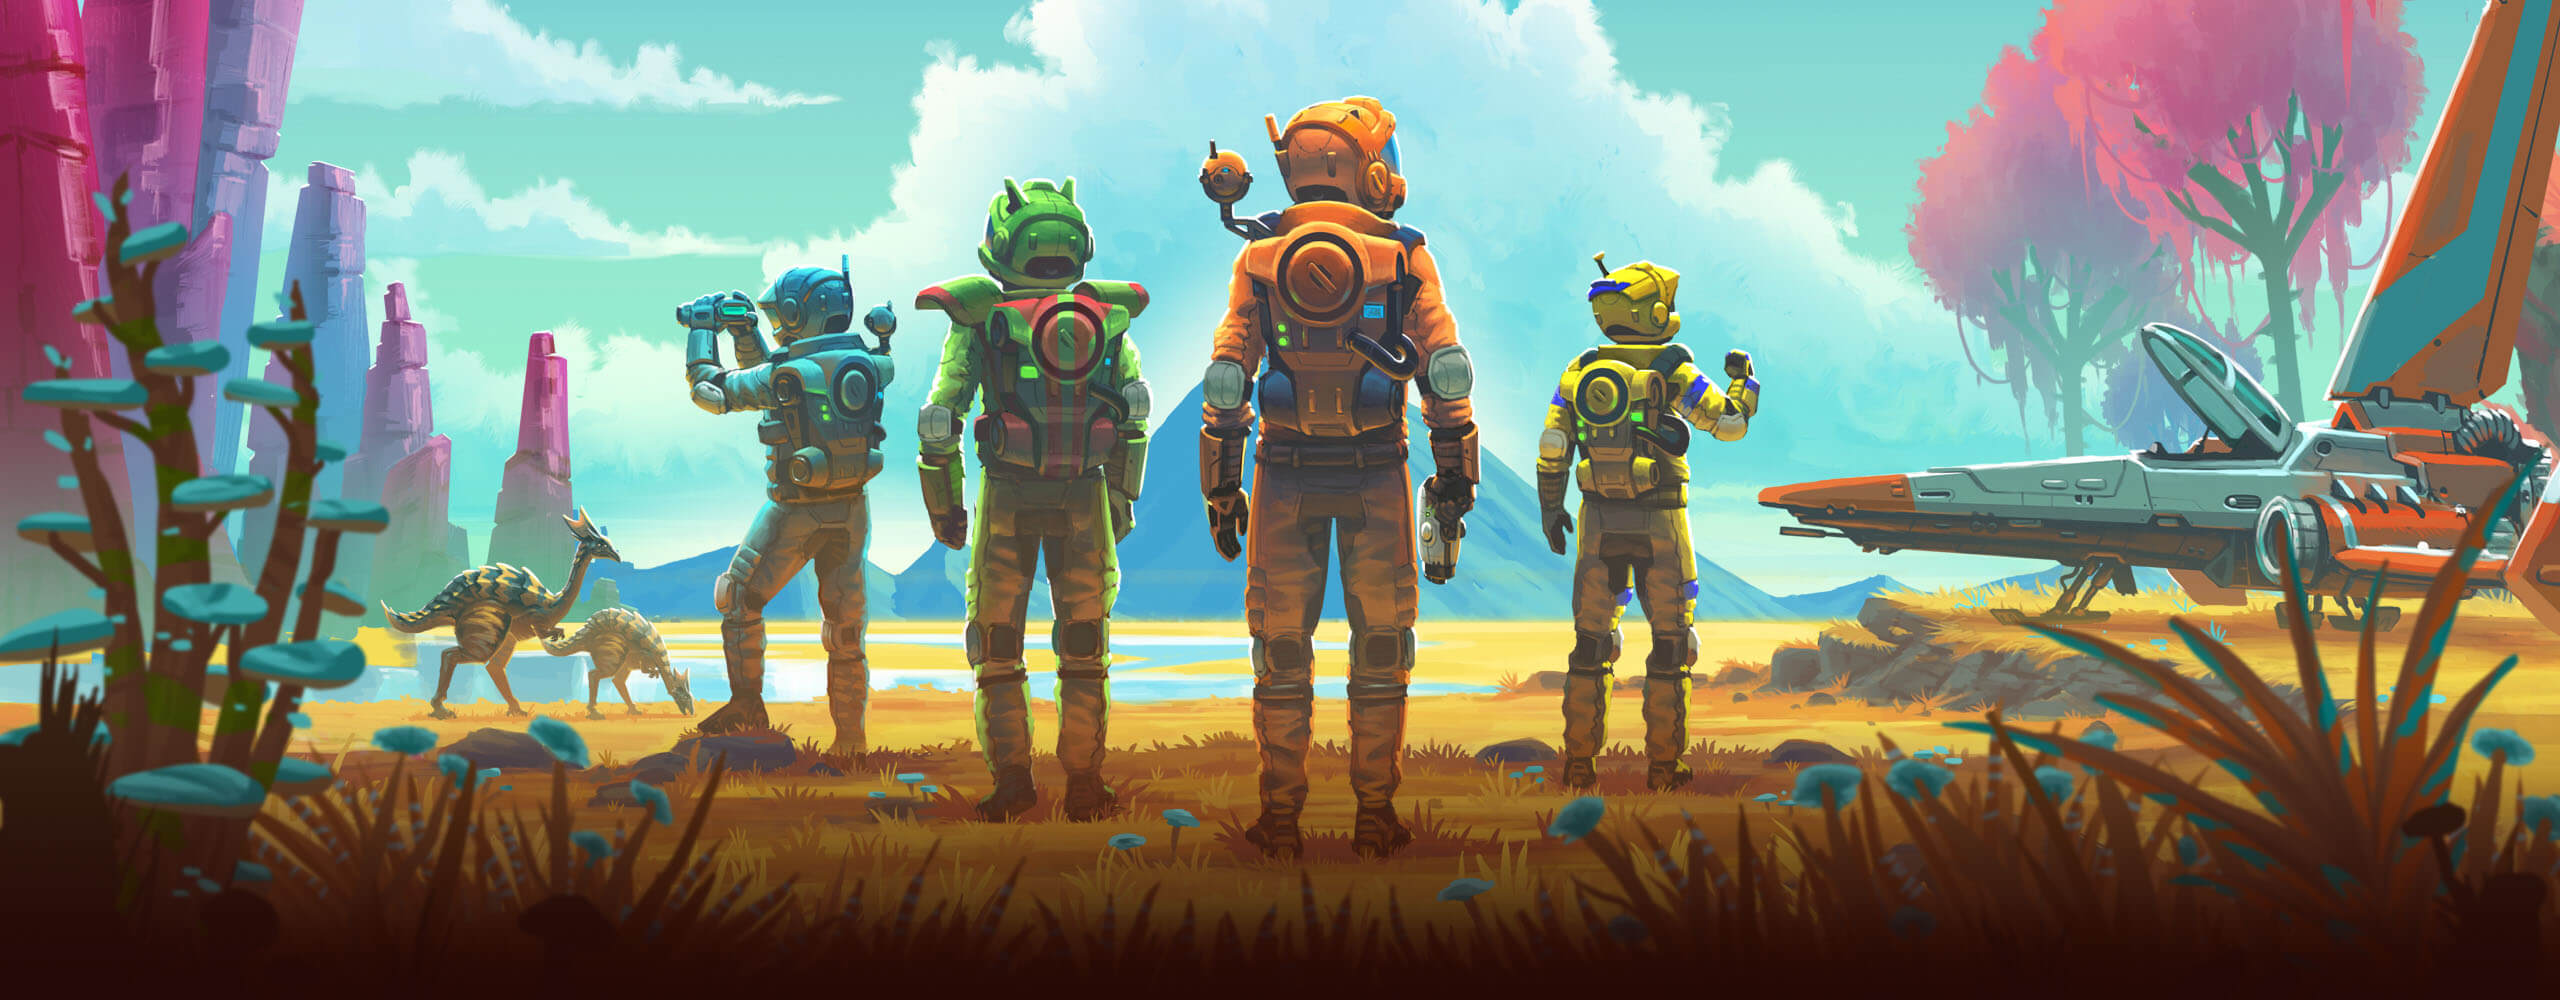 no man s sky next release date and multiplayer announcement 505 games